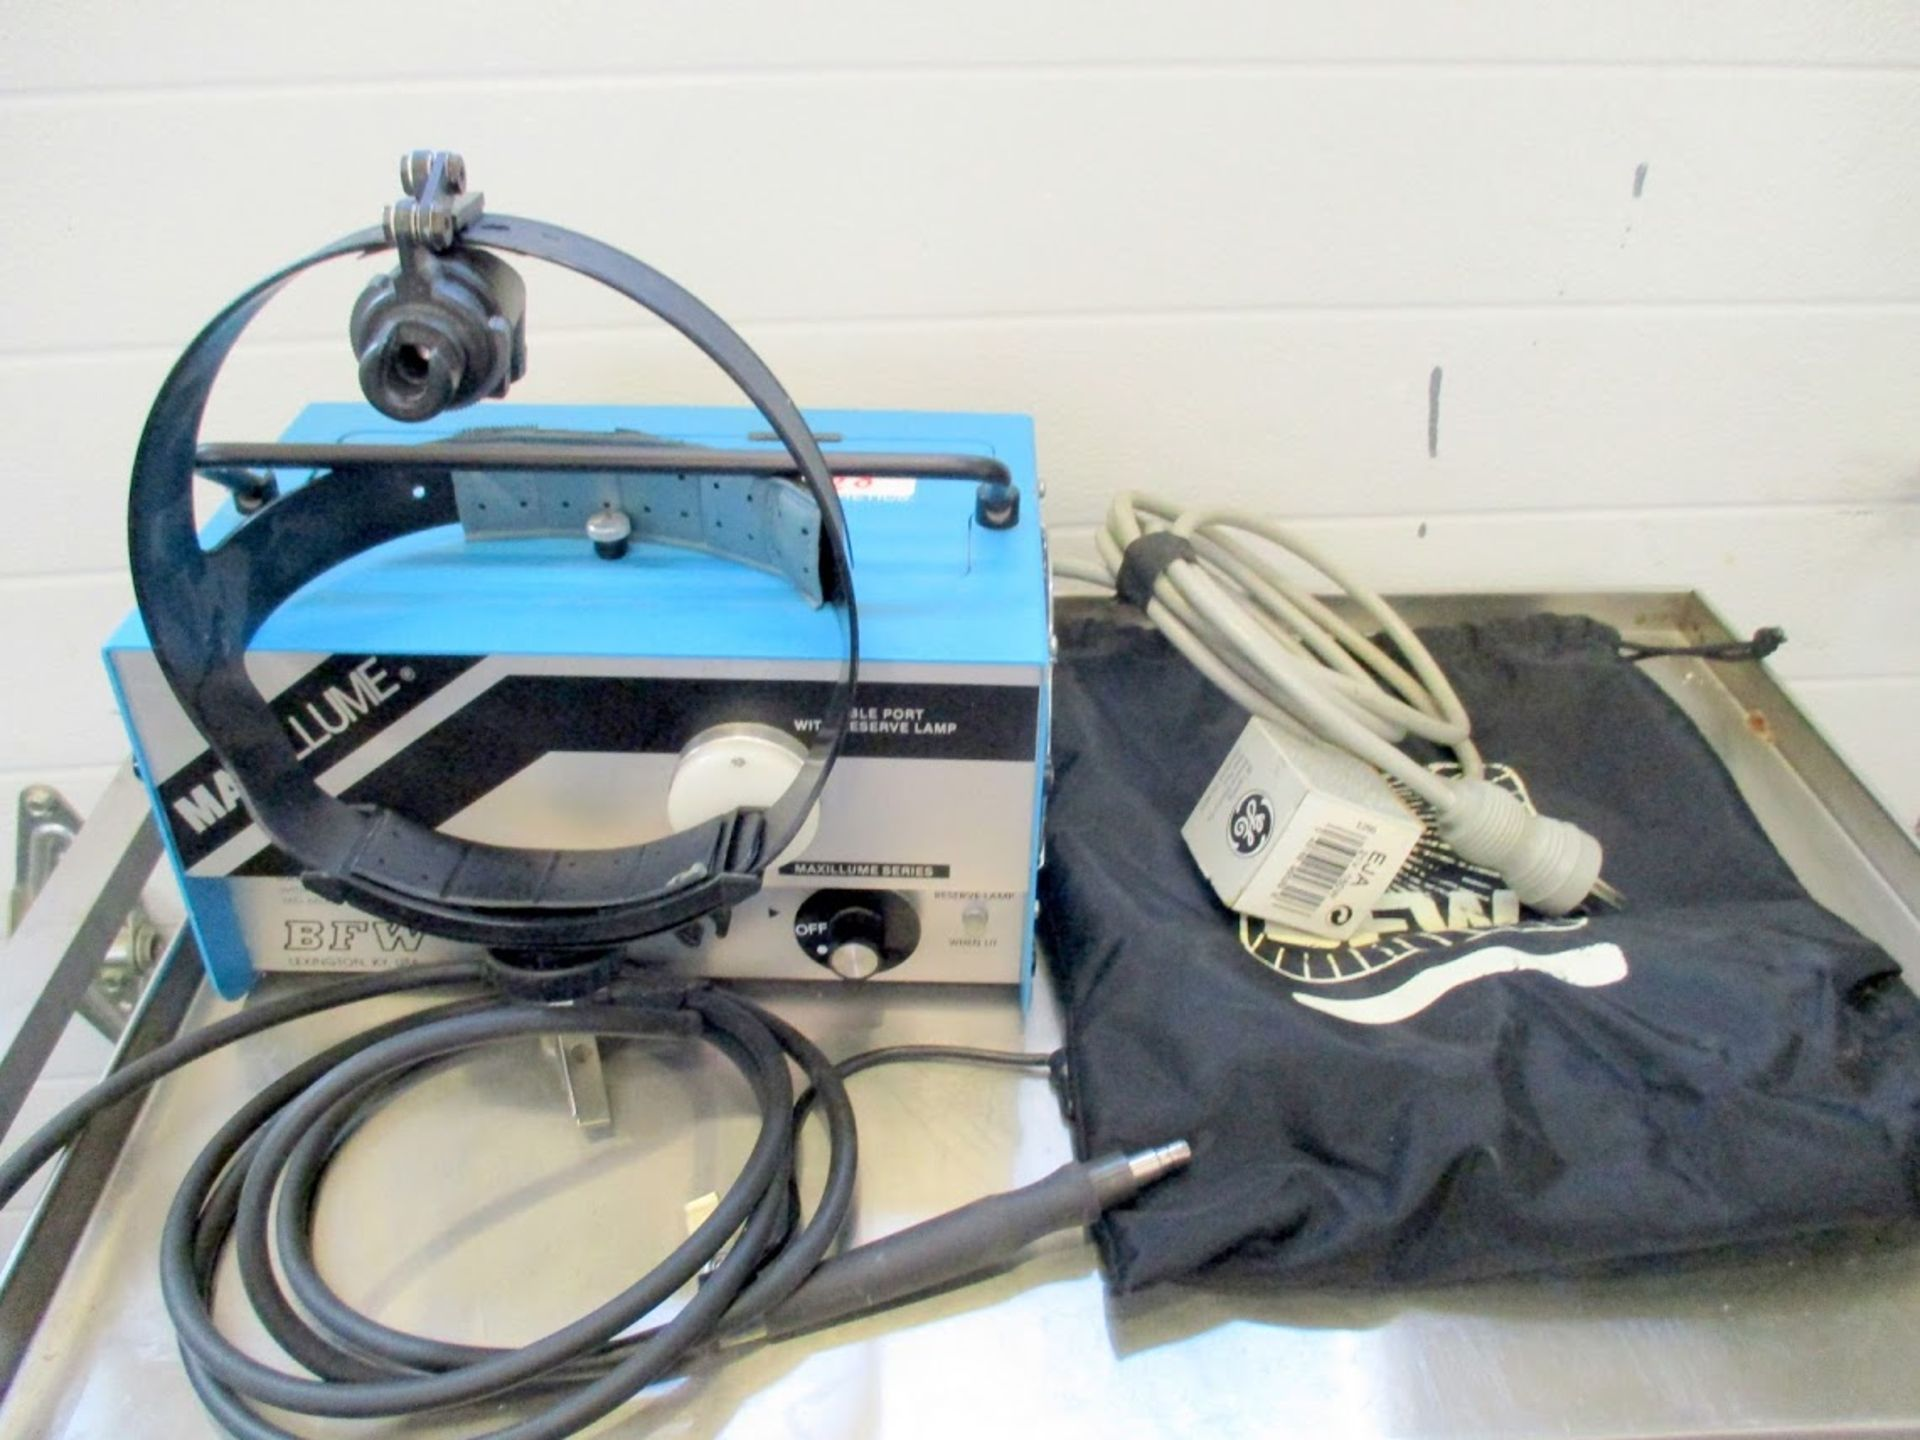 BFW 150-1 Light Source with headgear, handpiece, new bulb and carrying bag.